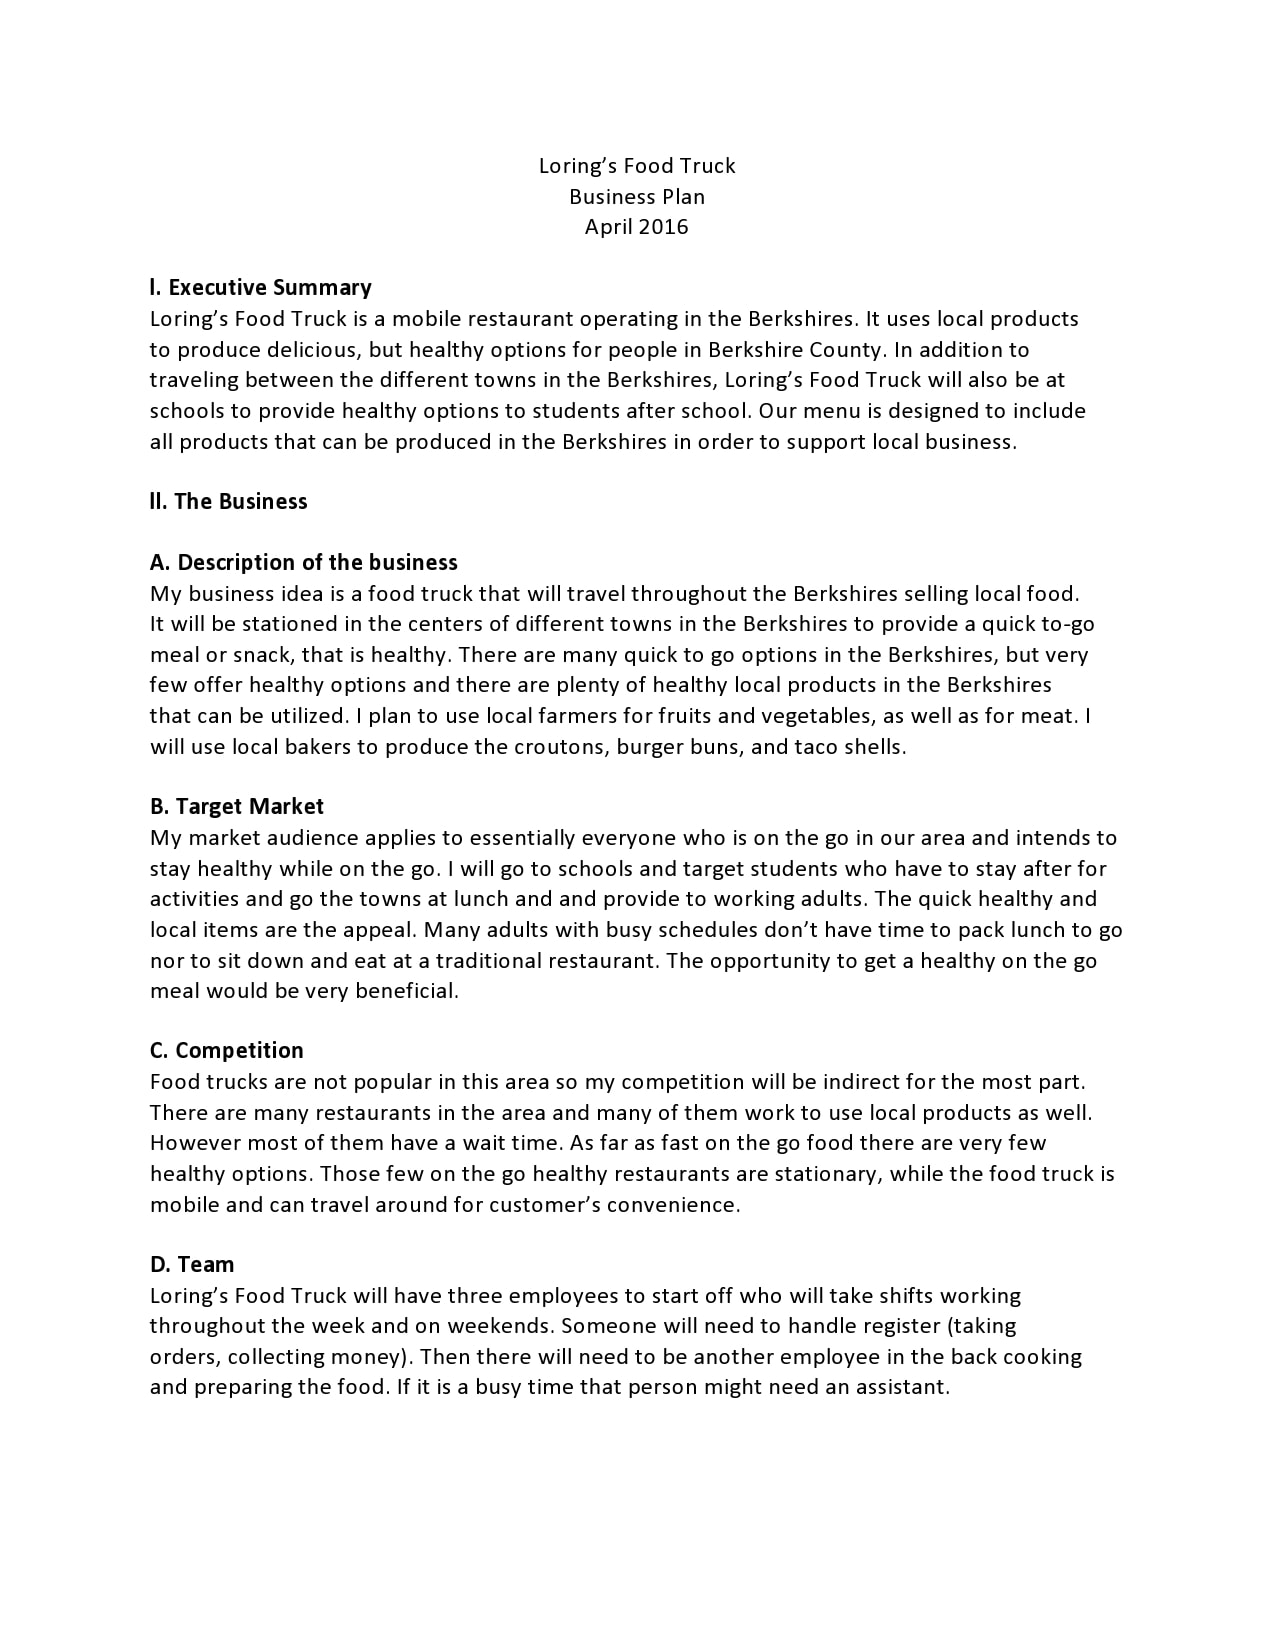 food truck business plan 24